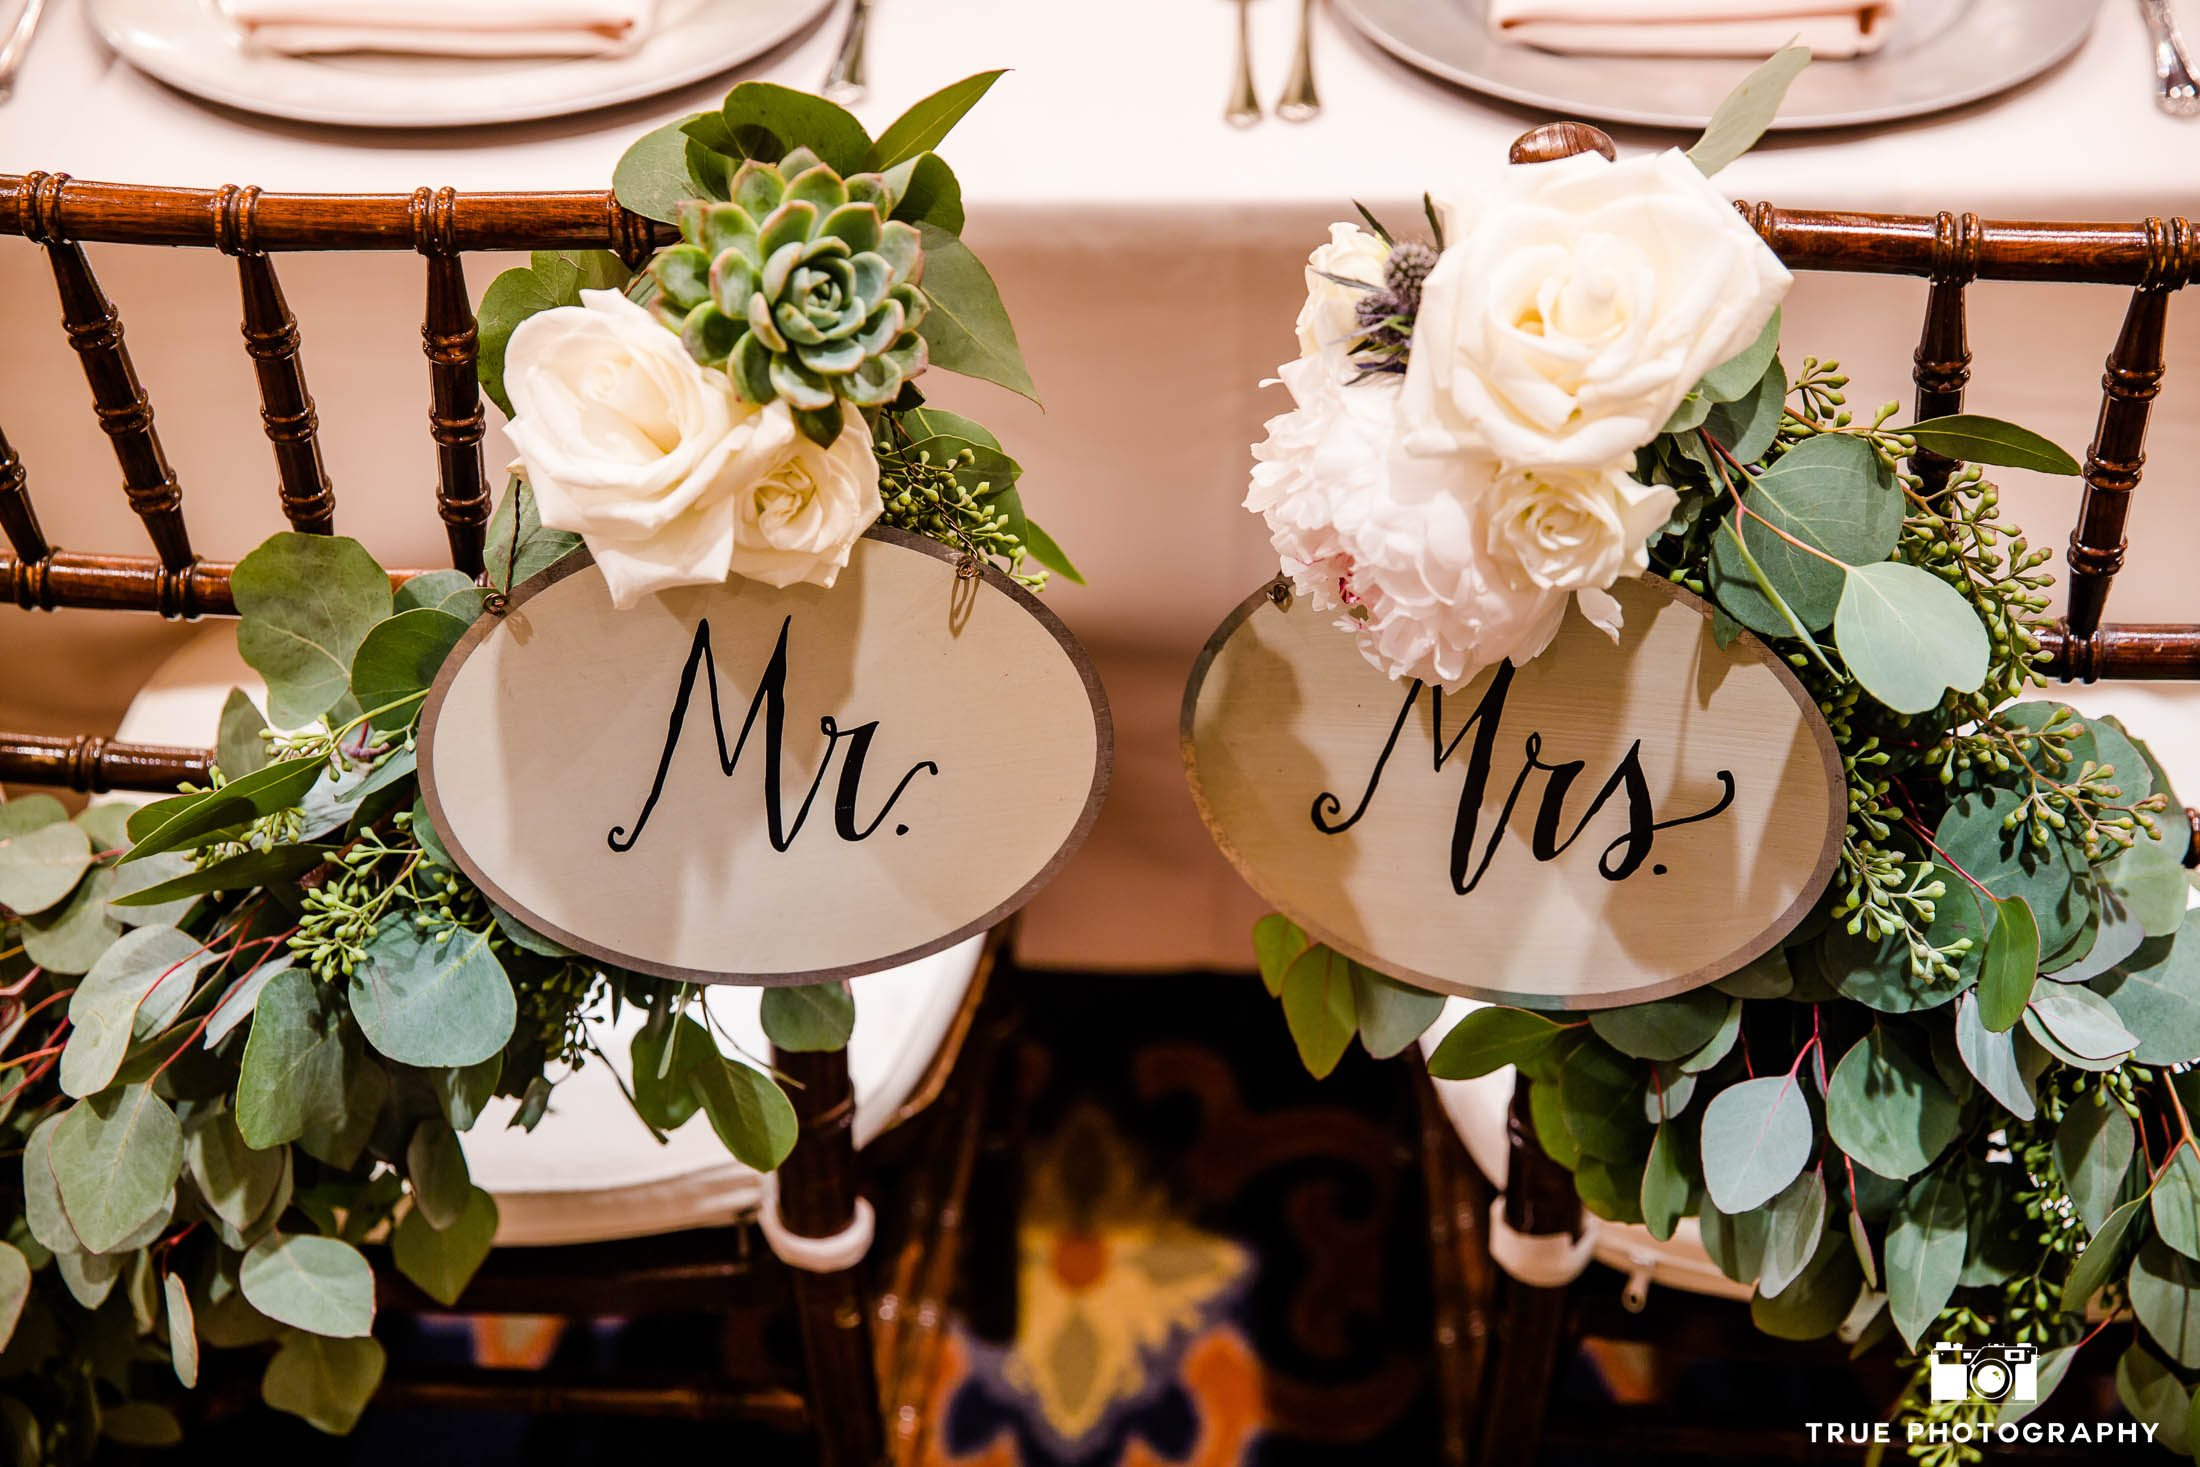 Mr. and Mrs. signs with flowers decorate sweetheart table chair